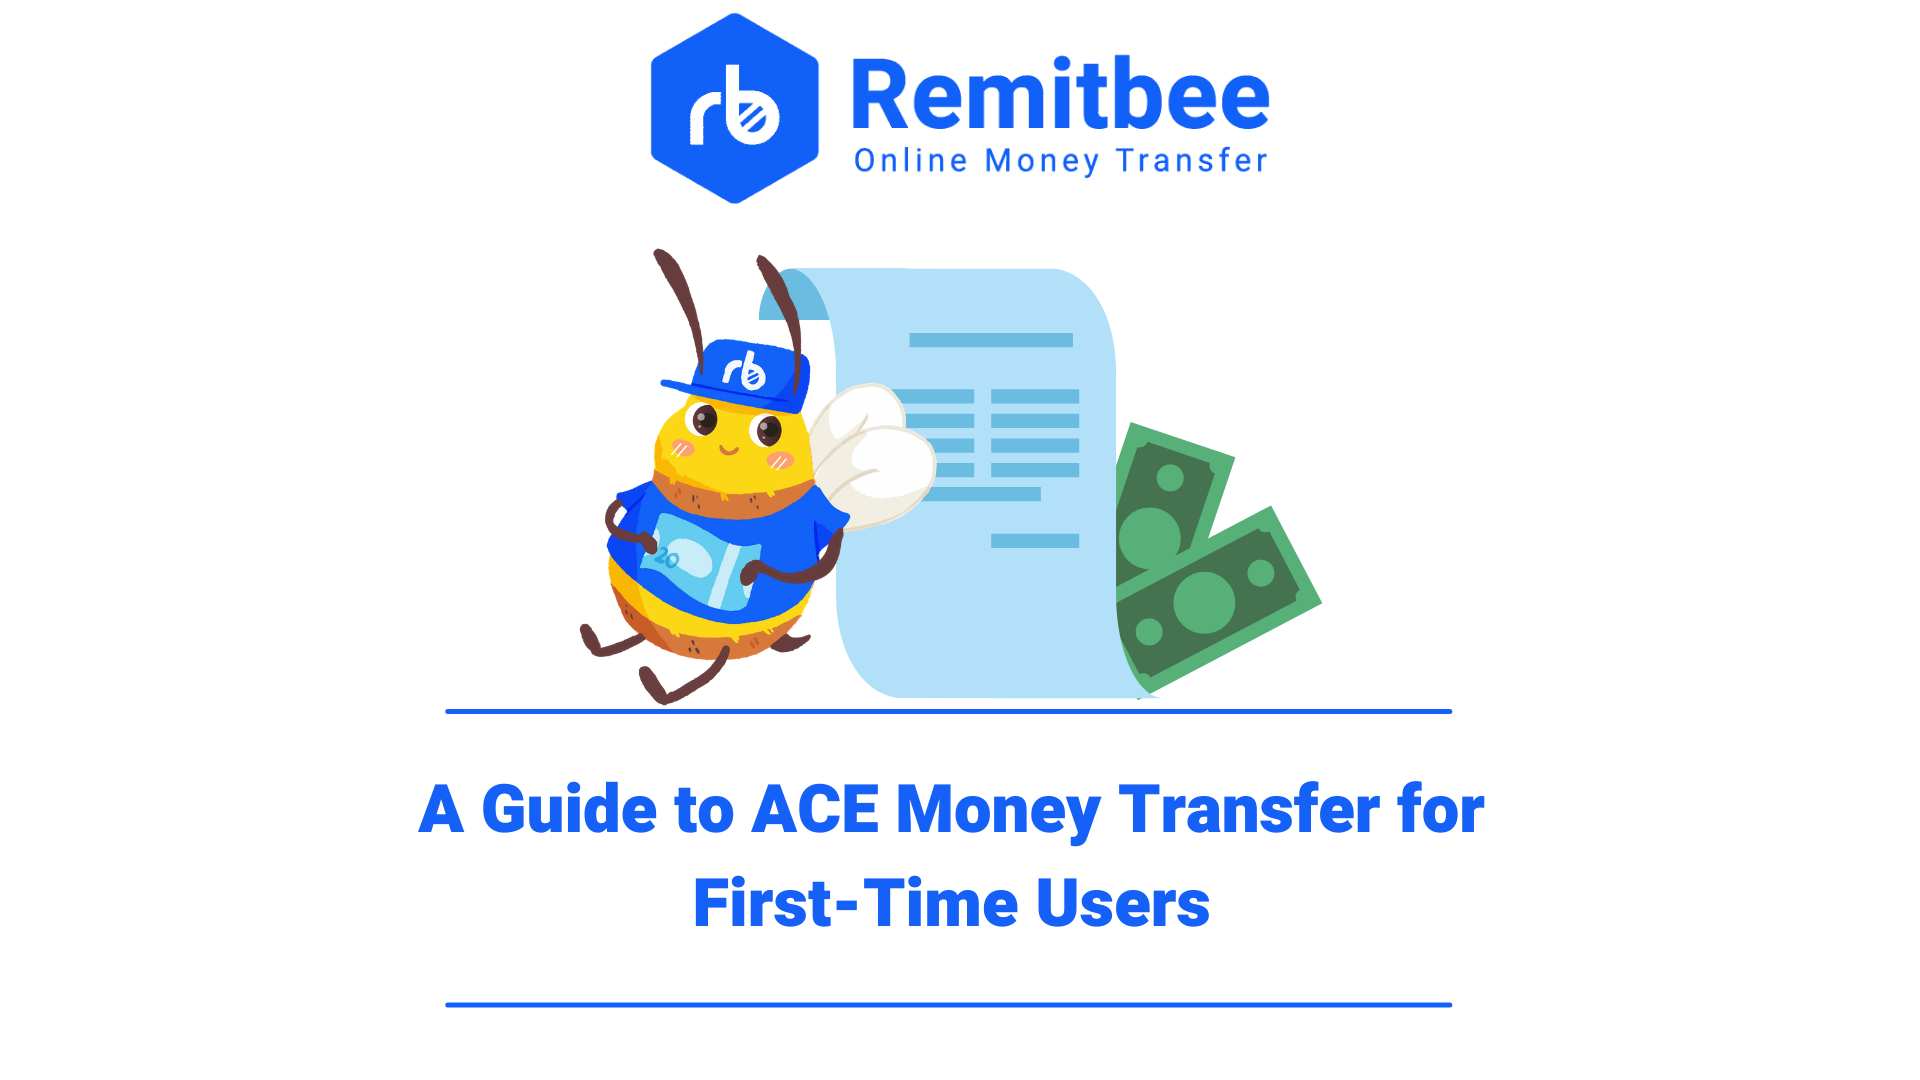 A Guide to ACE Money Transfer for First-Time Users